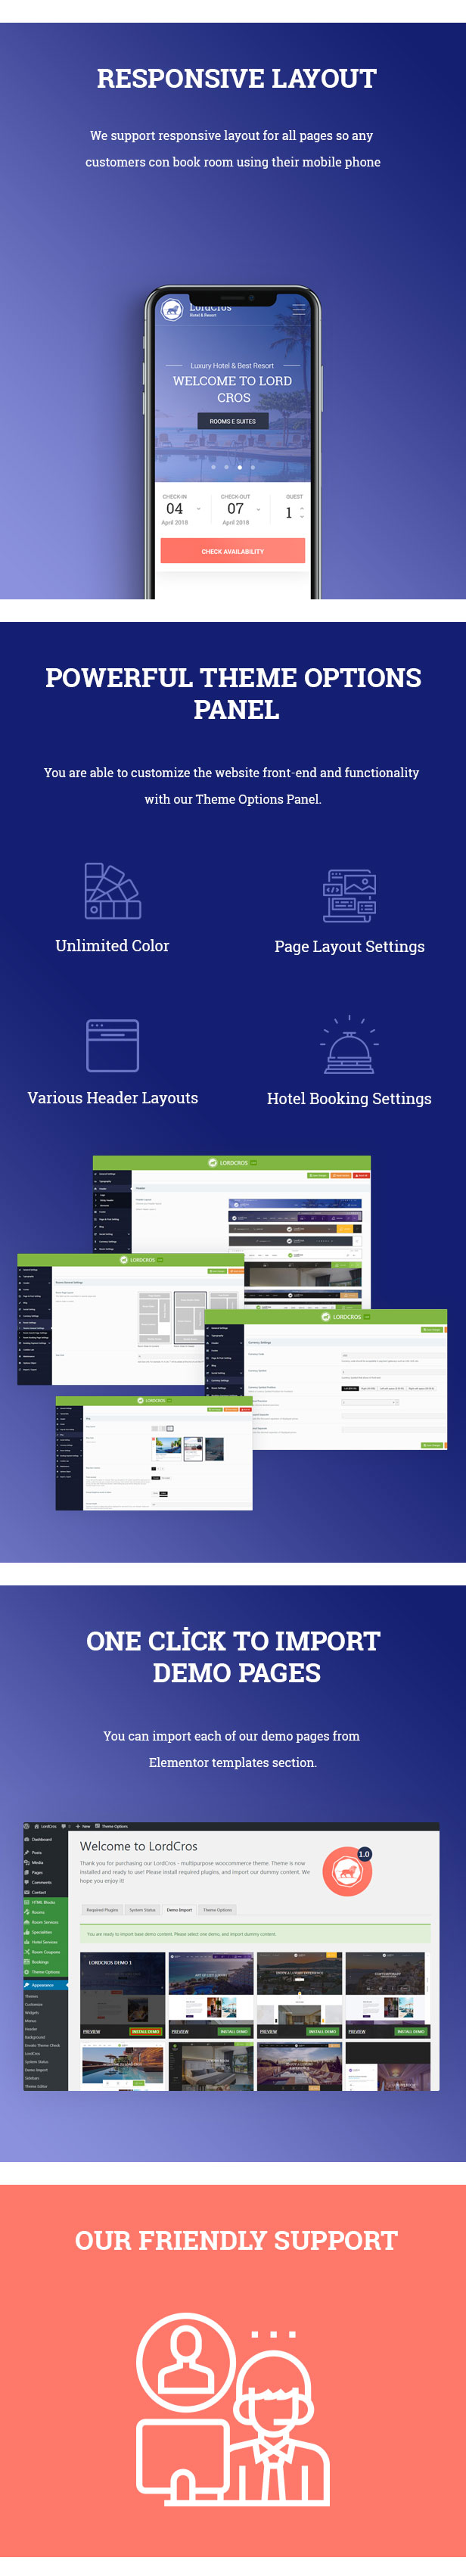 LordCros - Hotel Booking WordPress Theme - 7